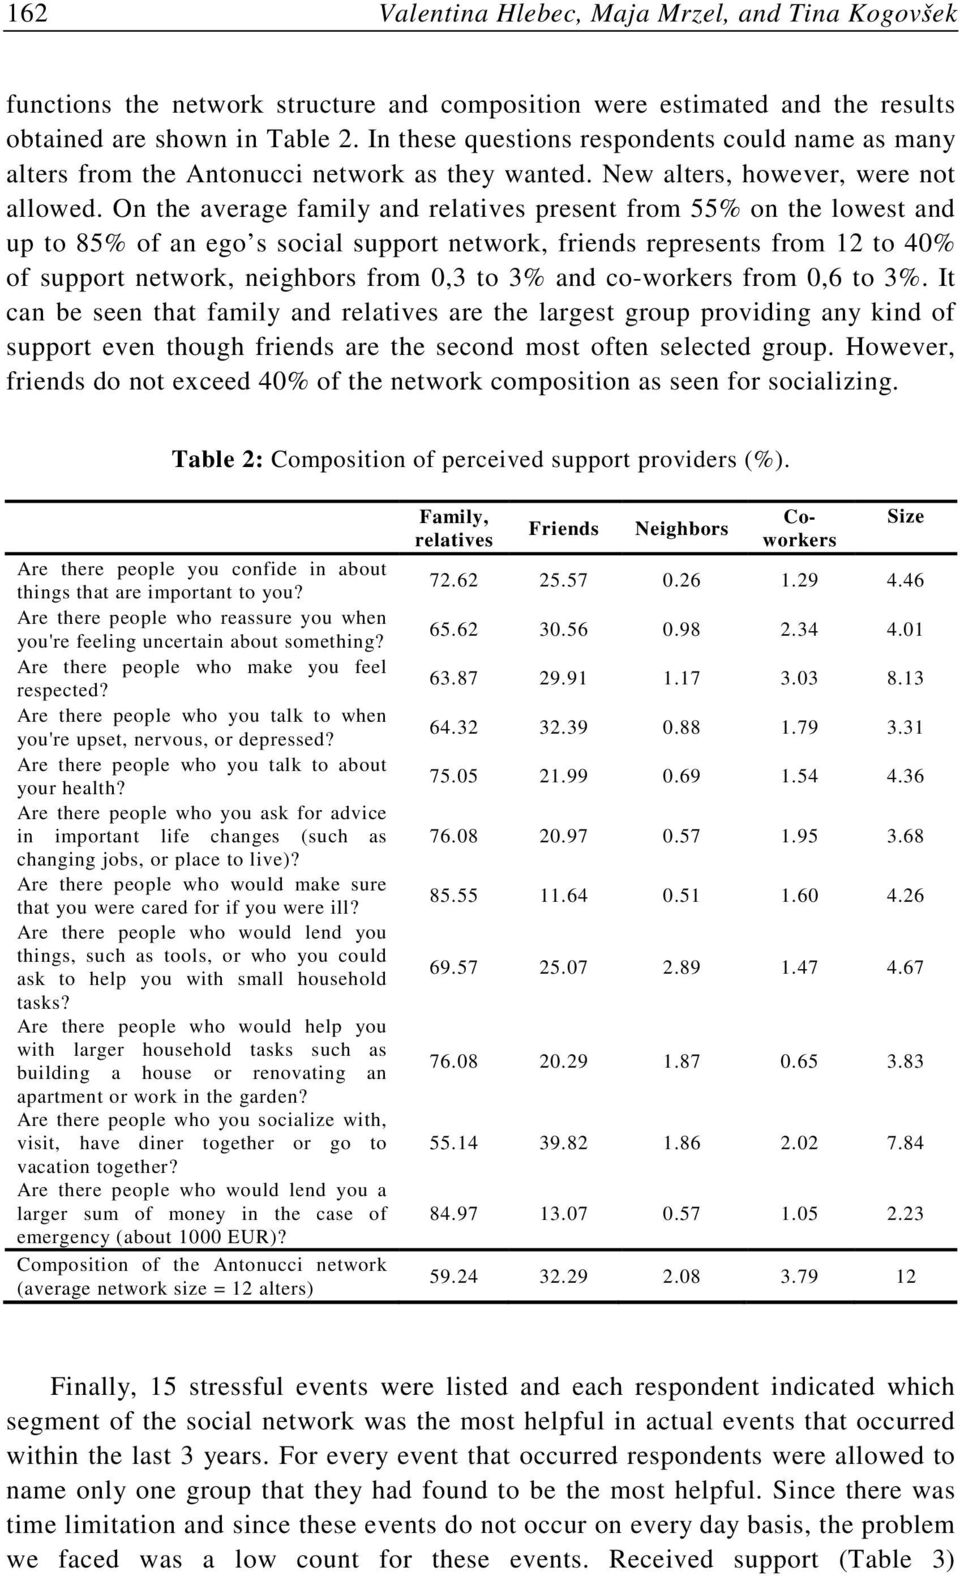 On the average family and relatives present from 55% on the lowest and up to 85% of an ego s social support network, friends represents from 12 to 40% of support network, neighbors from 0,3 to 3% and